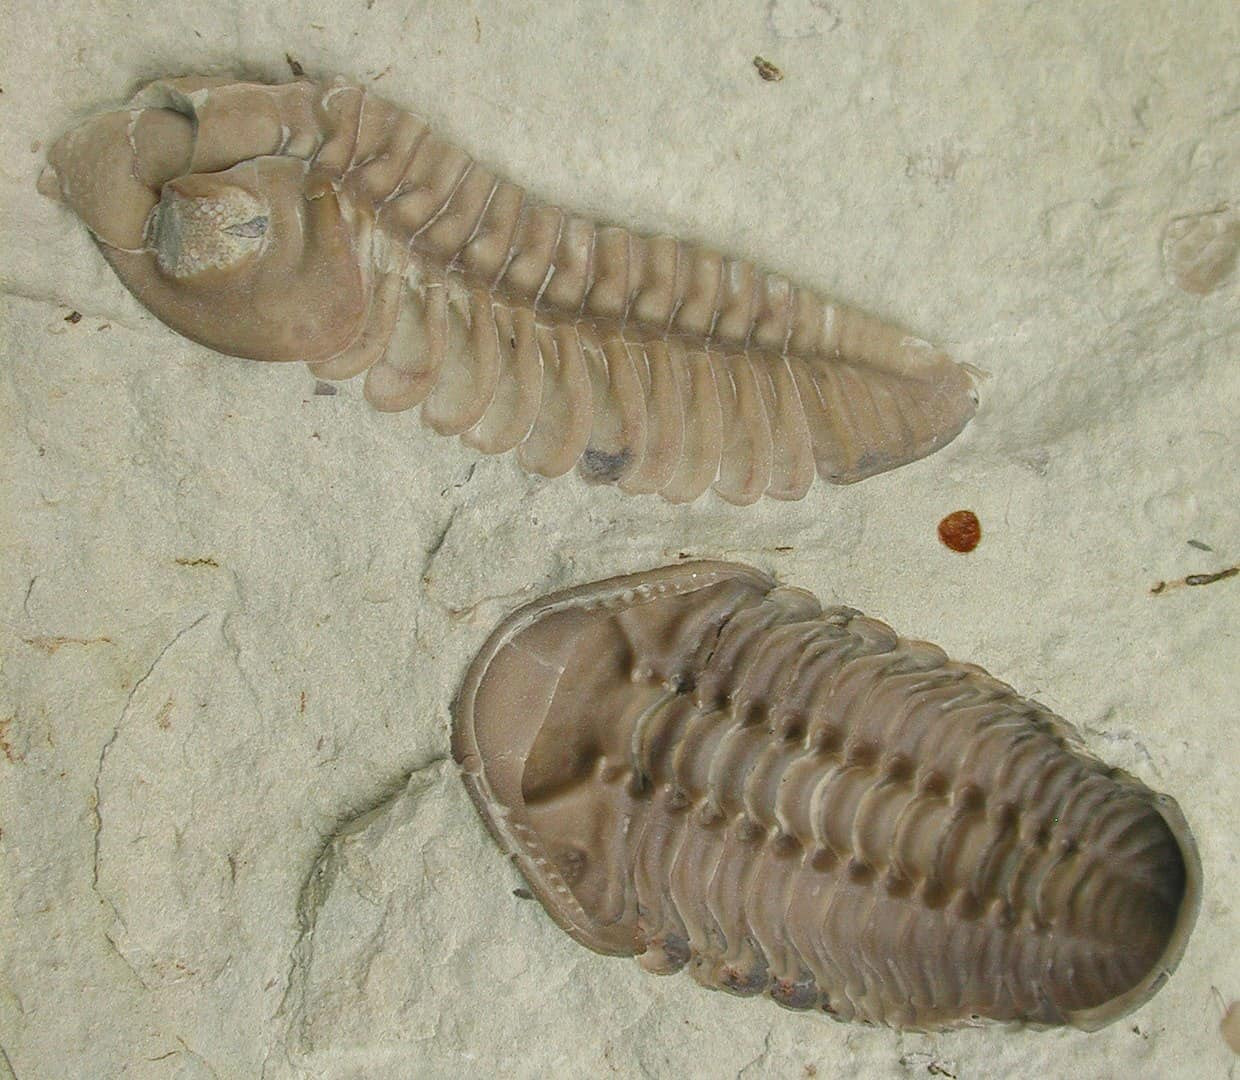 Trilobite fossils, of the kind which went extinct during the Great Dying.